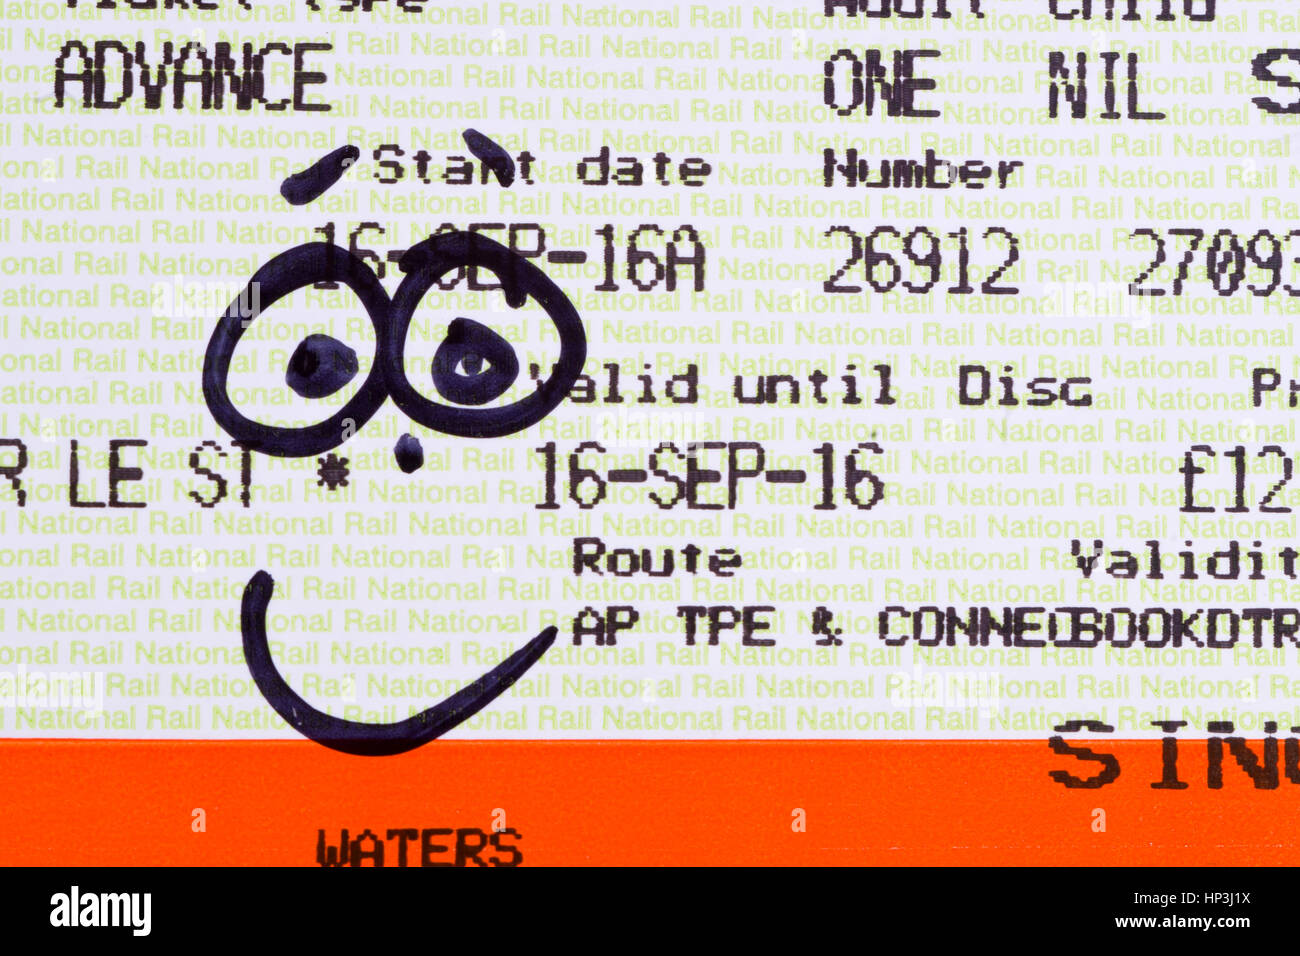 smile-smiley-face-train-ticket-HP3J1X.jp